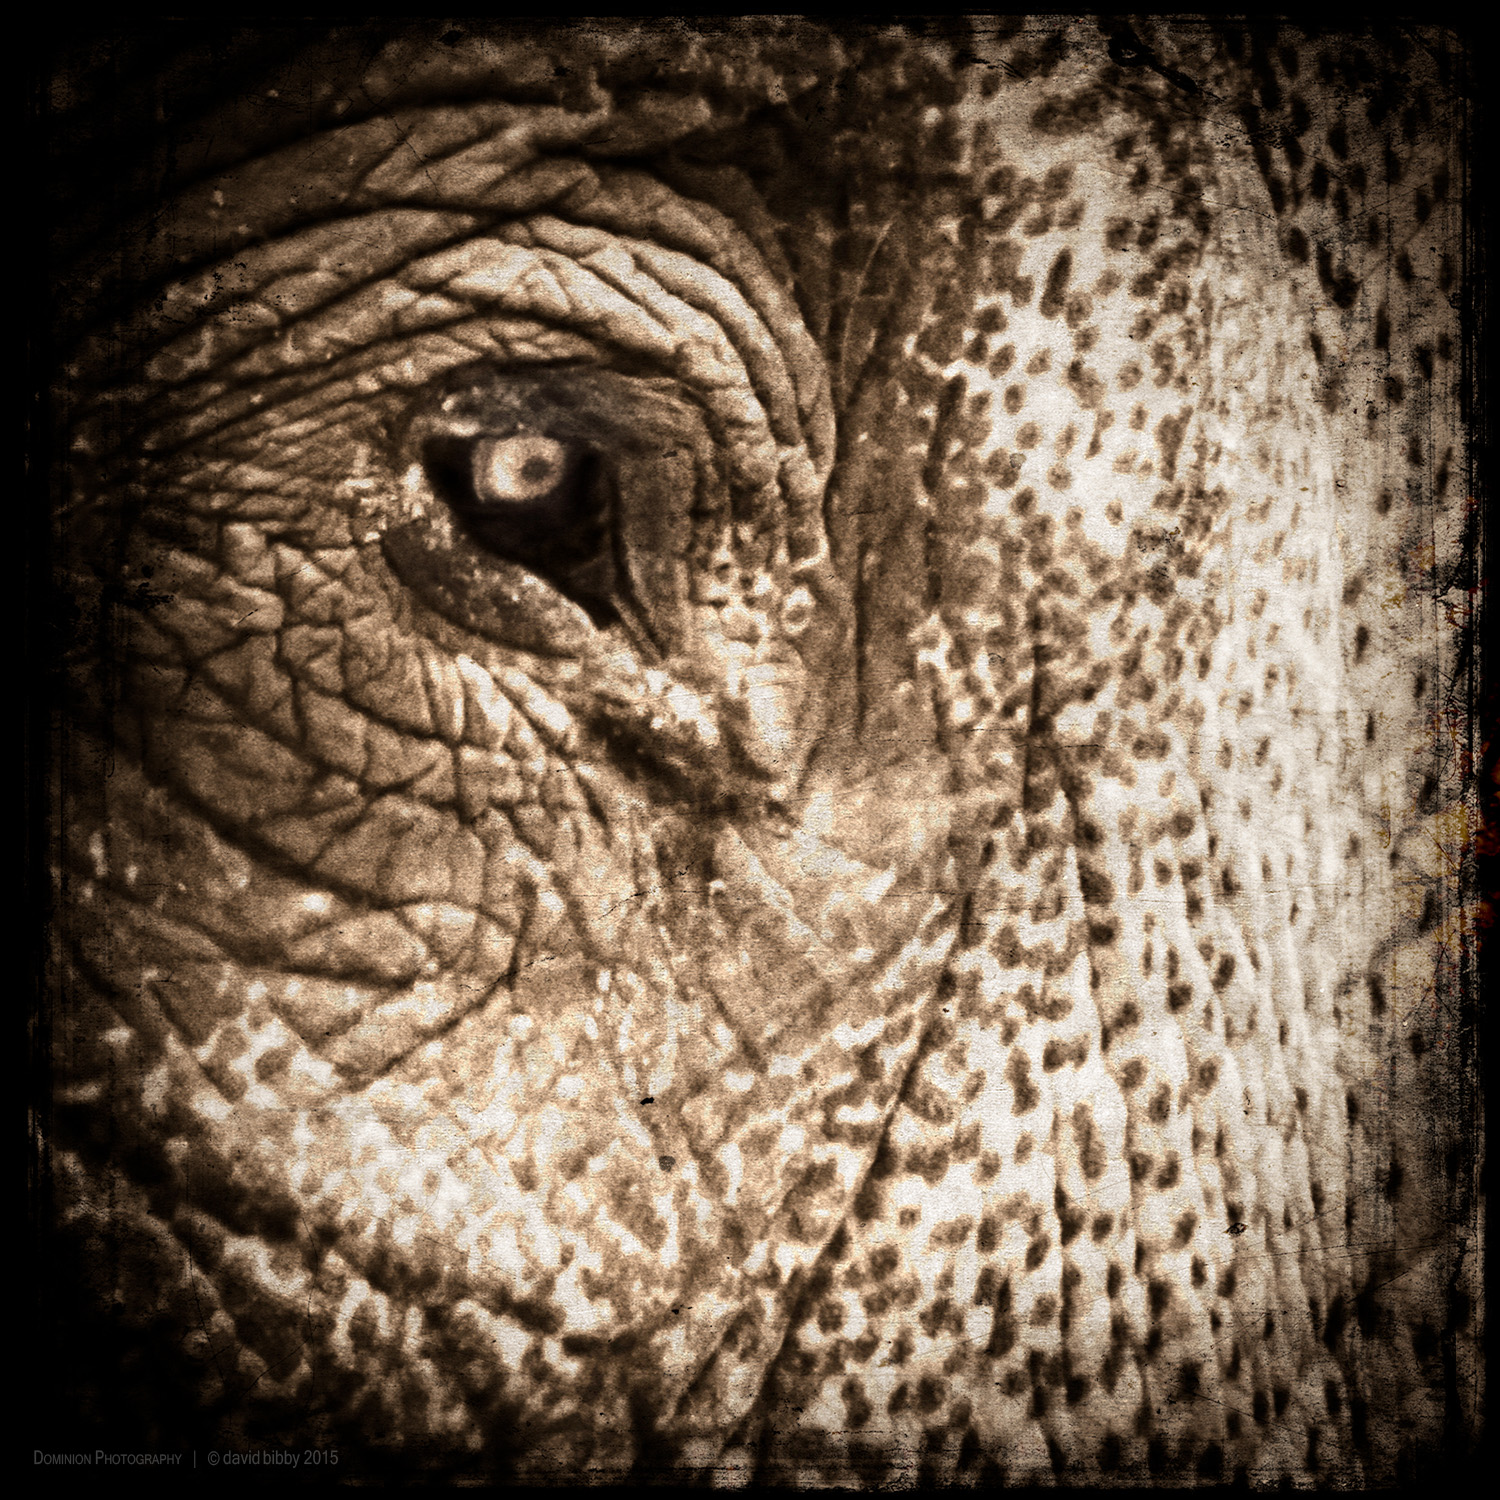 Guarding alertness   A crazy, untamed elephant in this world Cannot inflict such harm As the sufferings of the deepest hell Caused by the rampaging elephant of the mind;